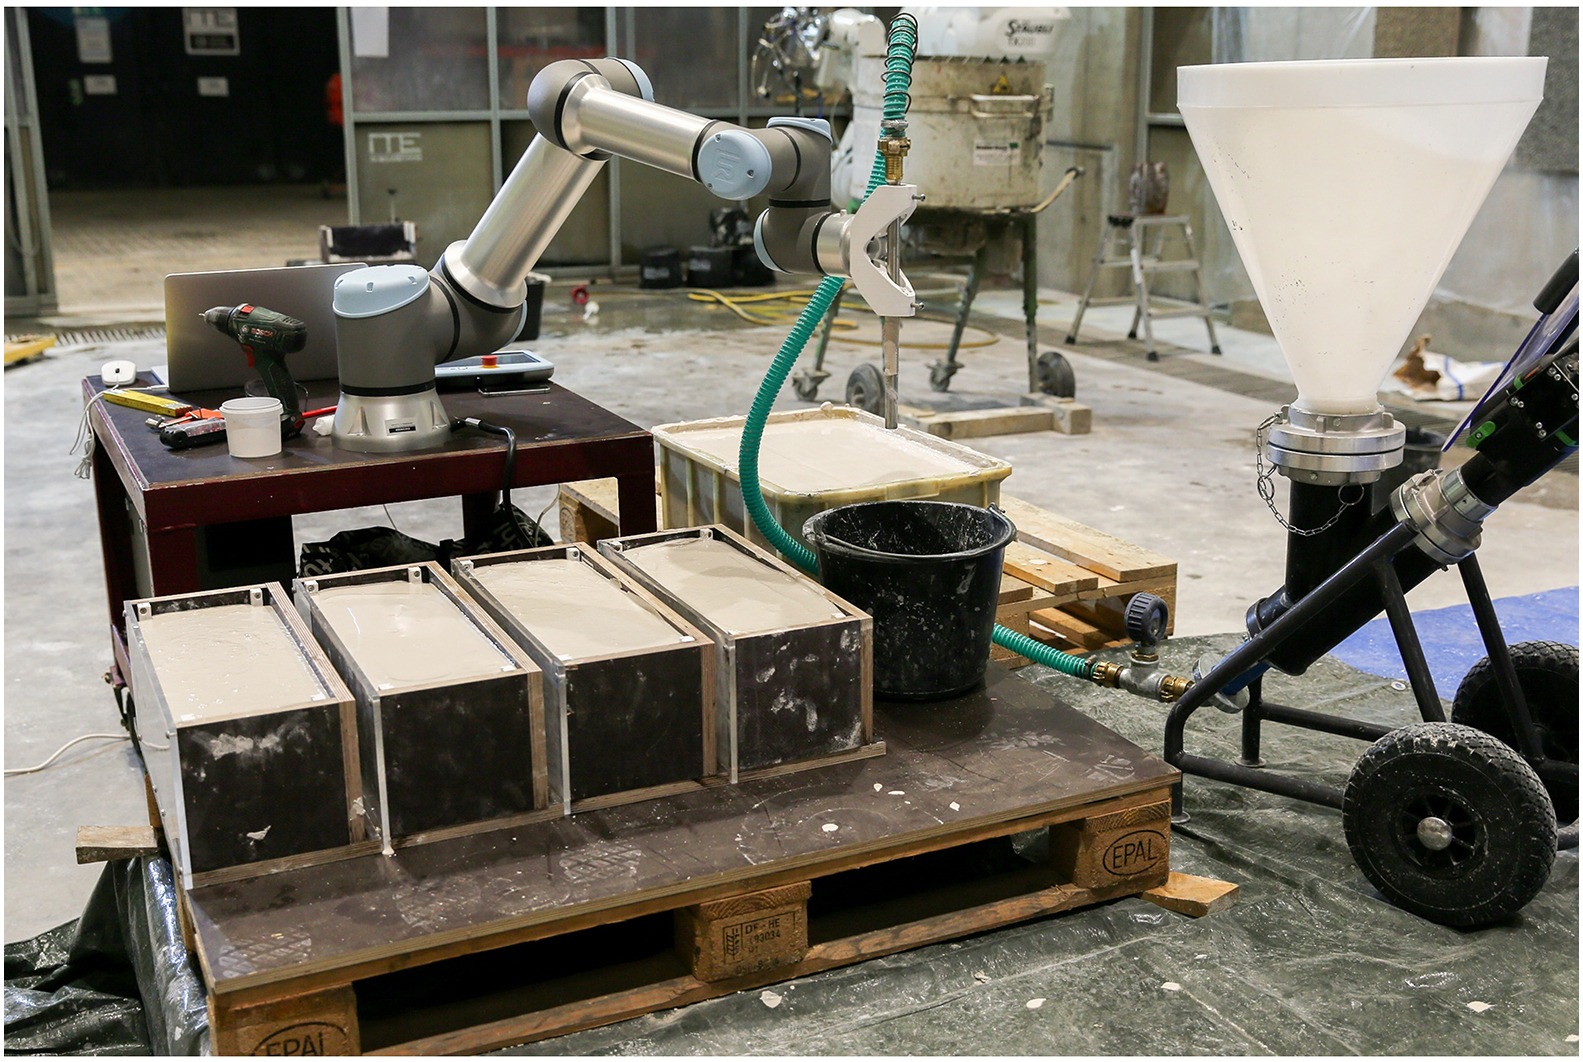 Injection 3D Concrete Printing setup: mixer, pump, robot, and formwork filled with ground limestone suspension. Photo via TU Braunschweig.